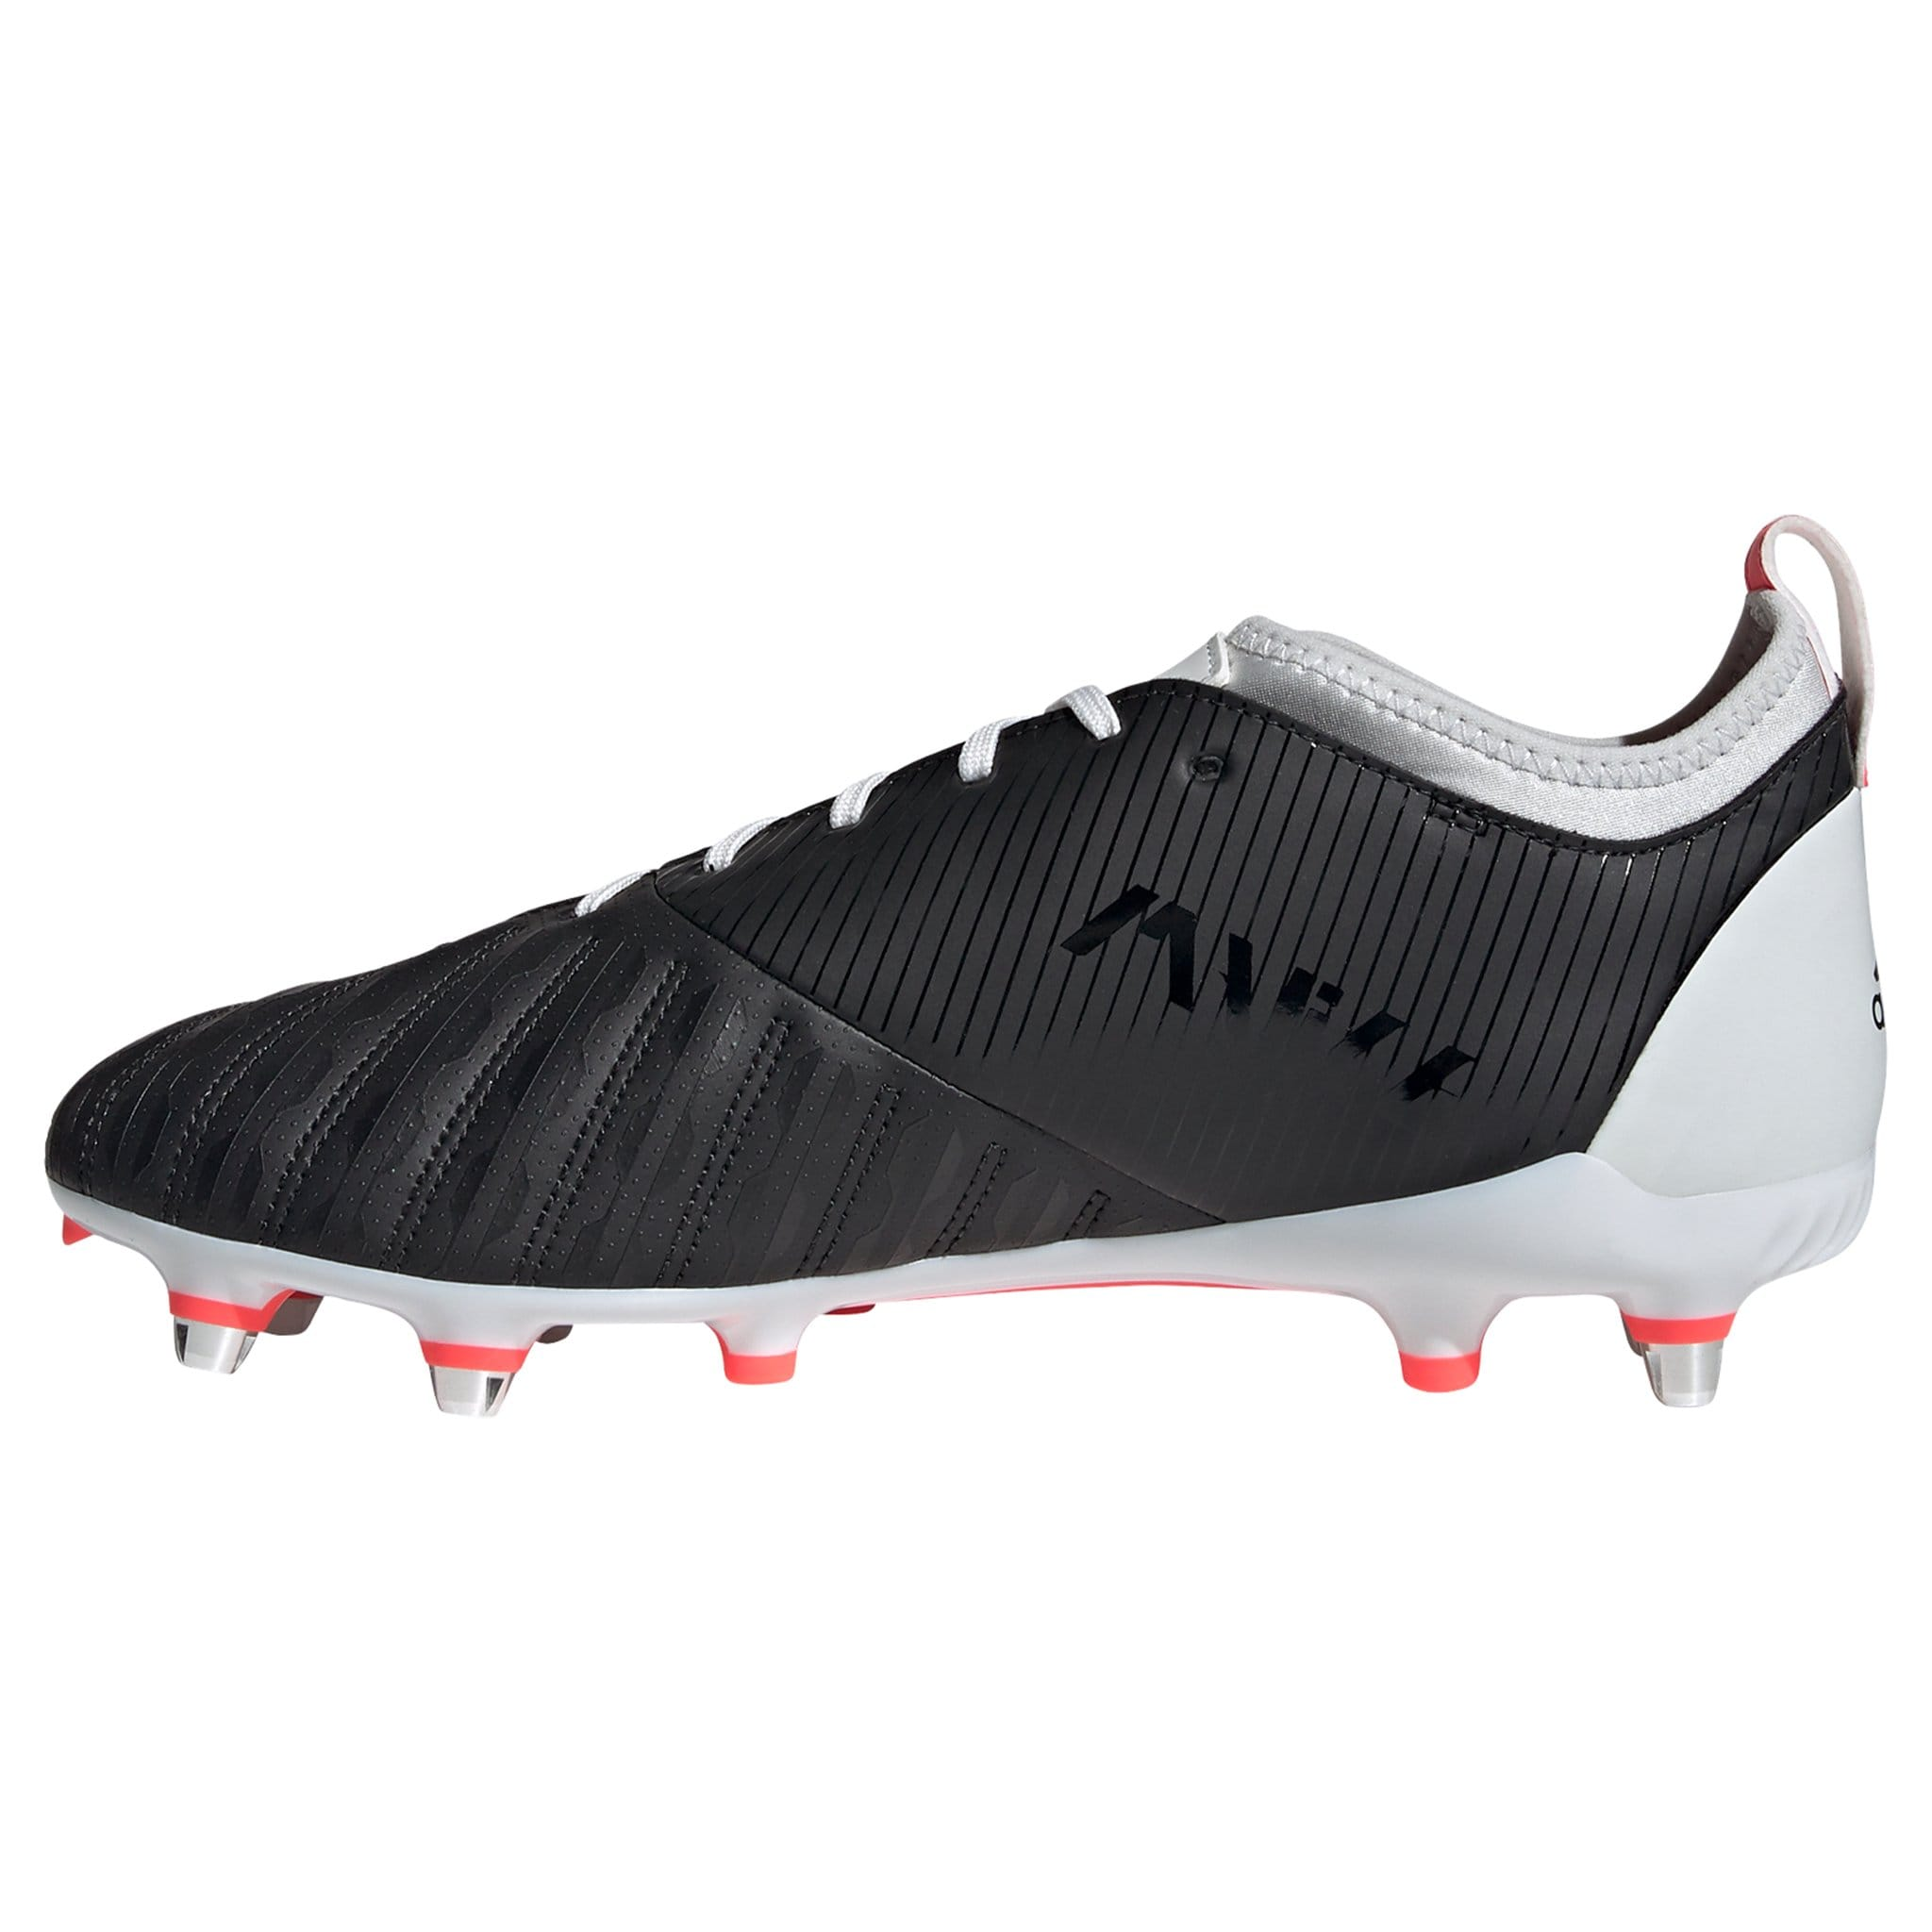 View of Inside of Foot Solid Black Rugby Boot White Laces